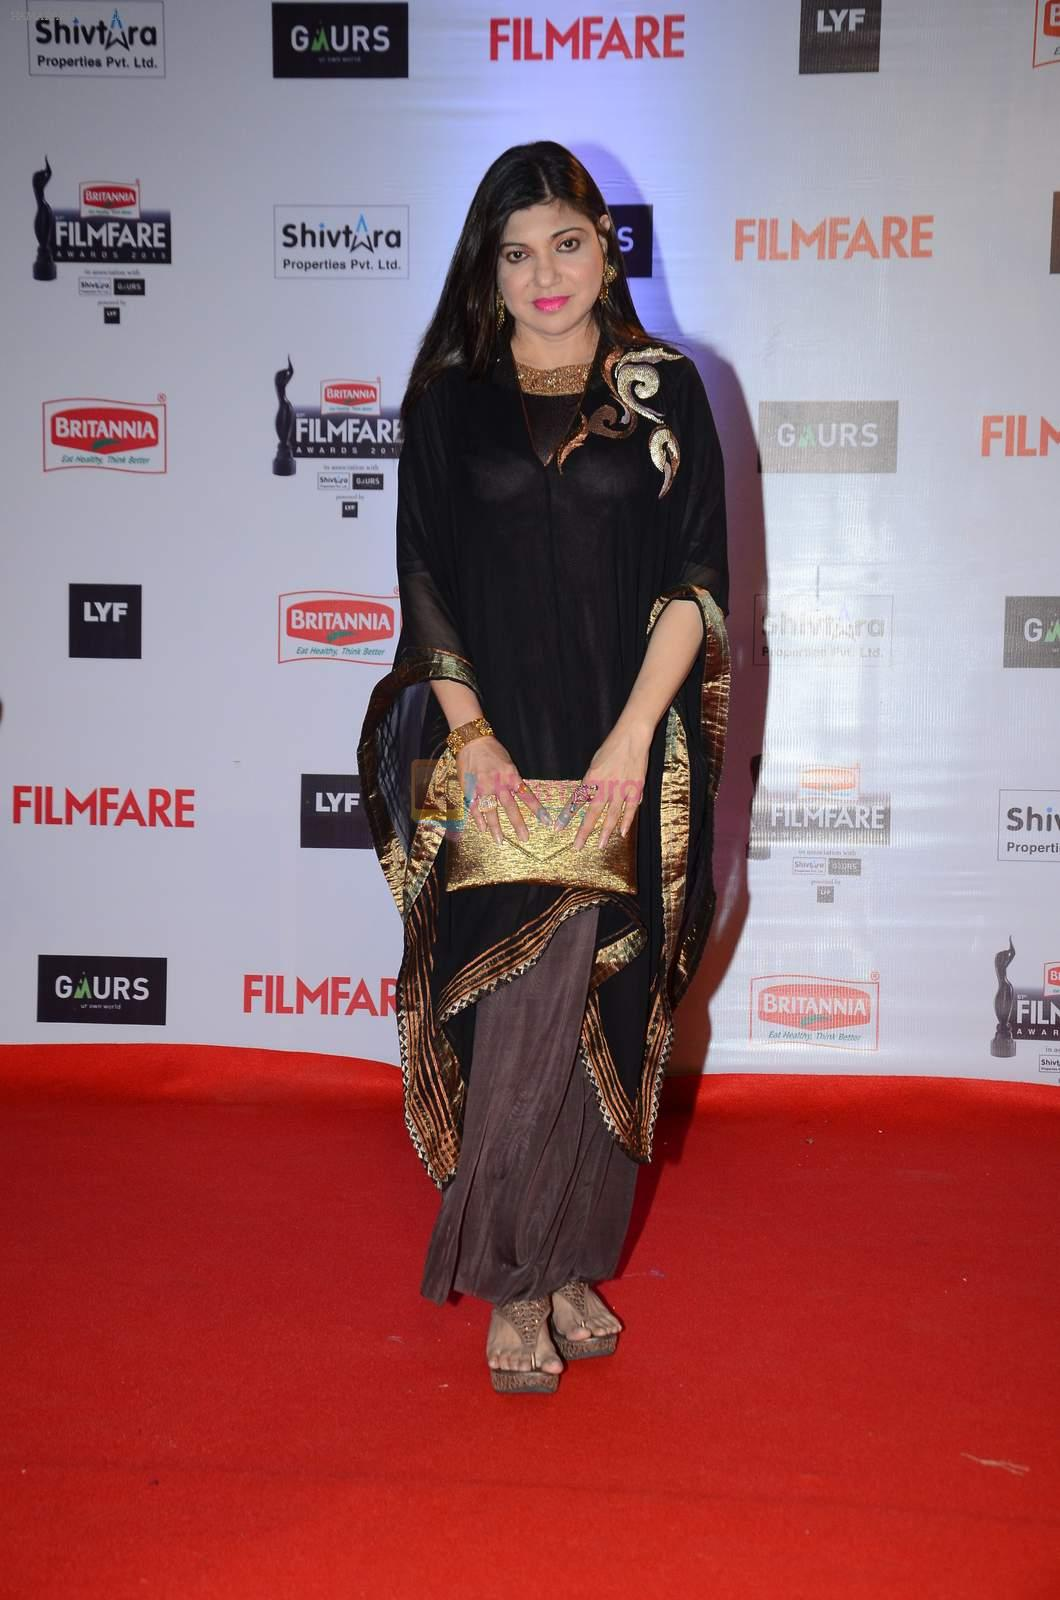 Alka Yagnik at Filmfare Awards 2016 on 15th Jan 2016